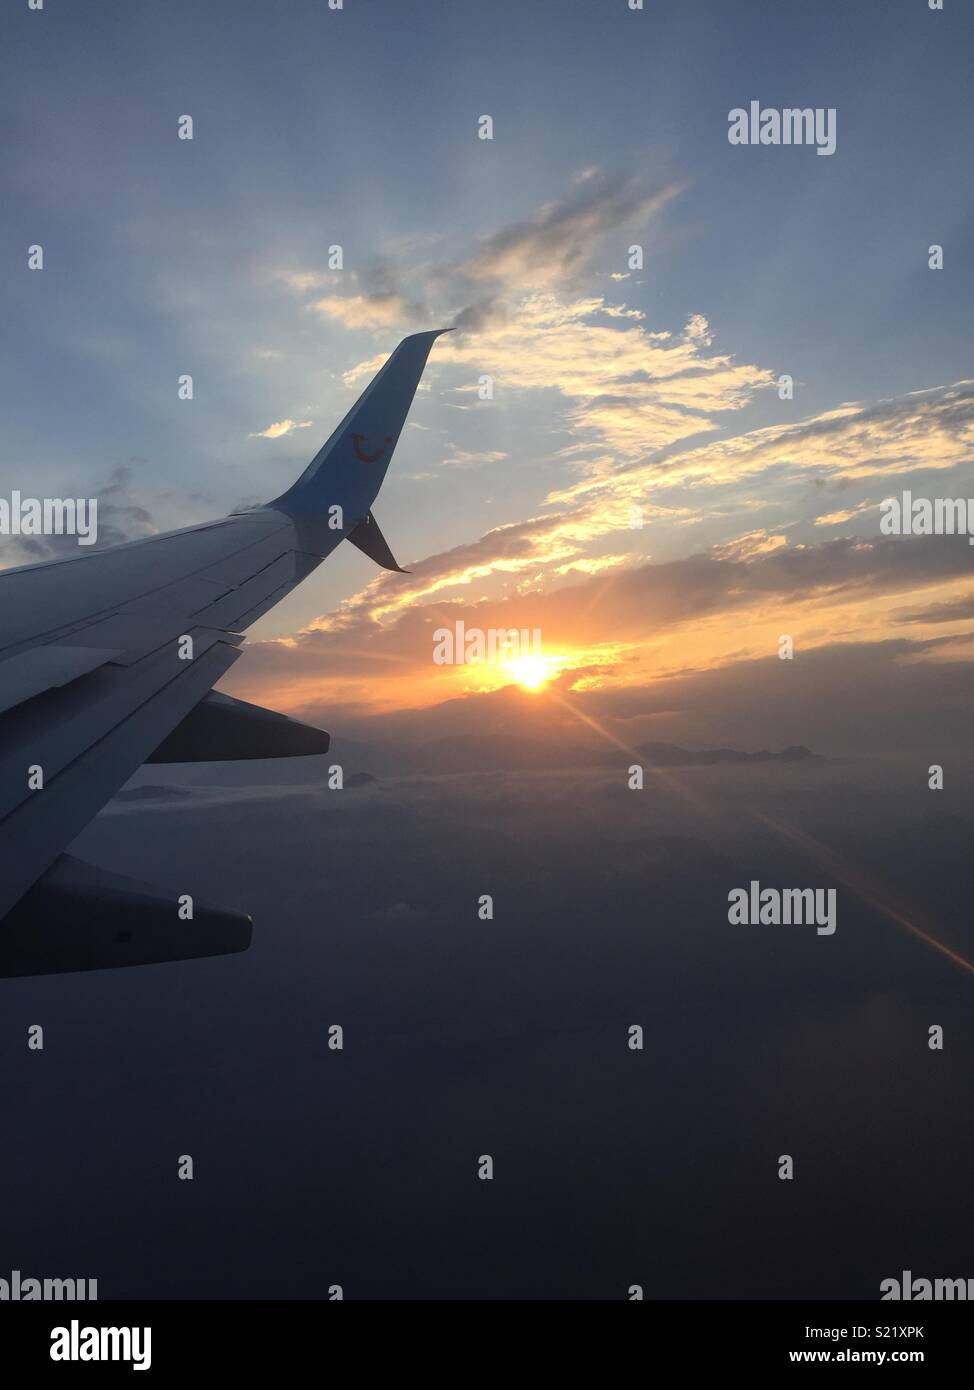 In a plane - Stock Image